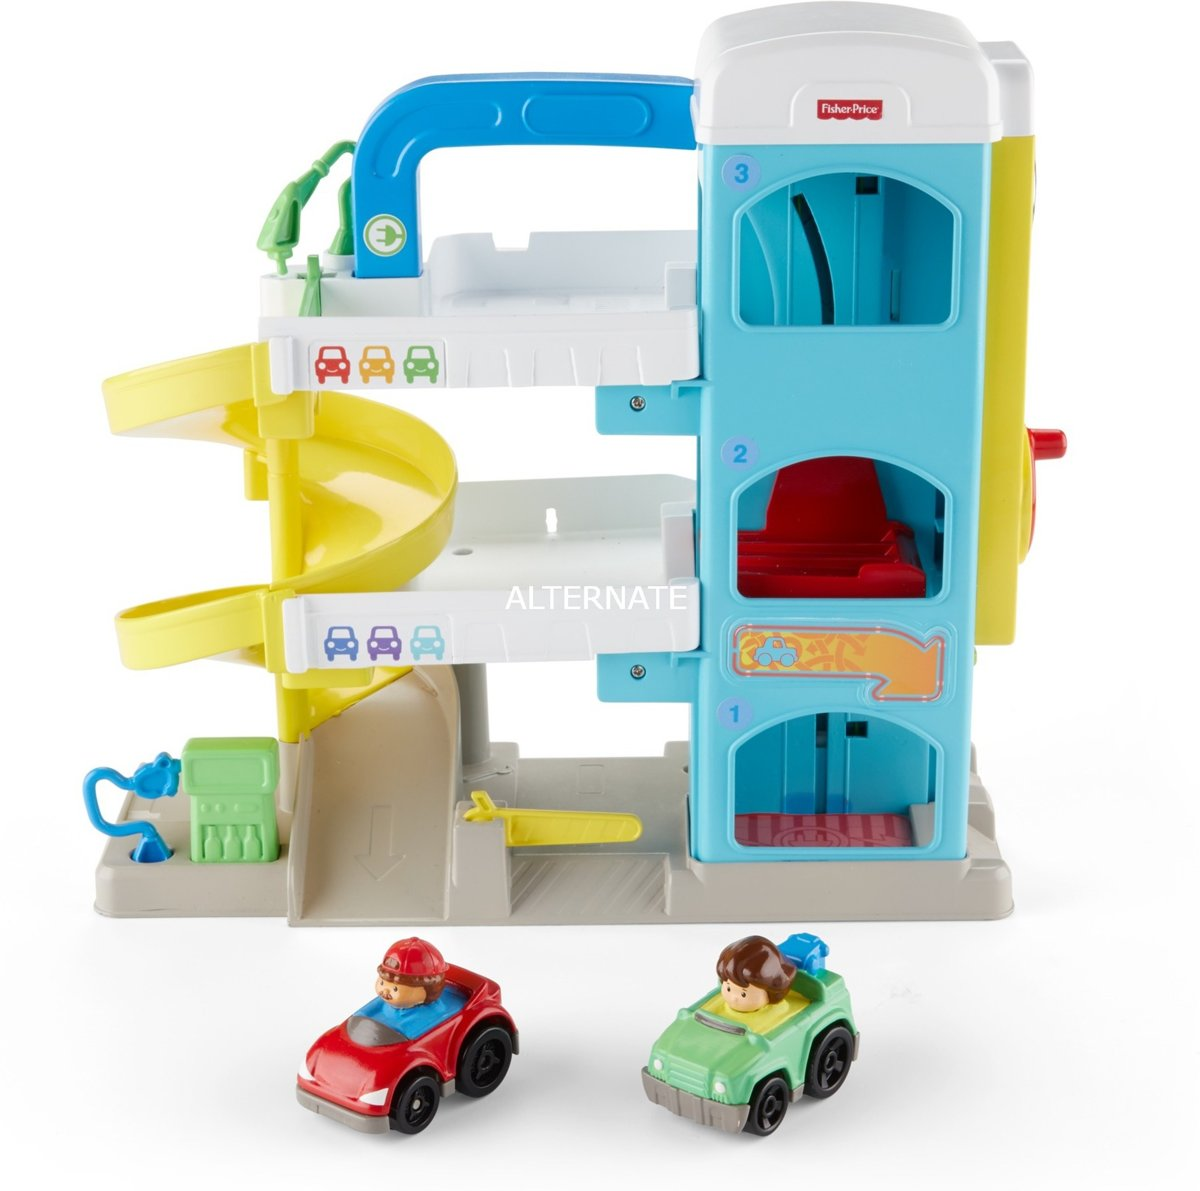 fisher-price/little people	Garage Little People